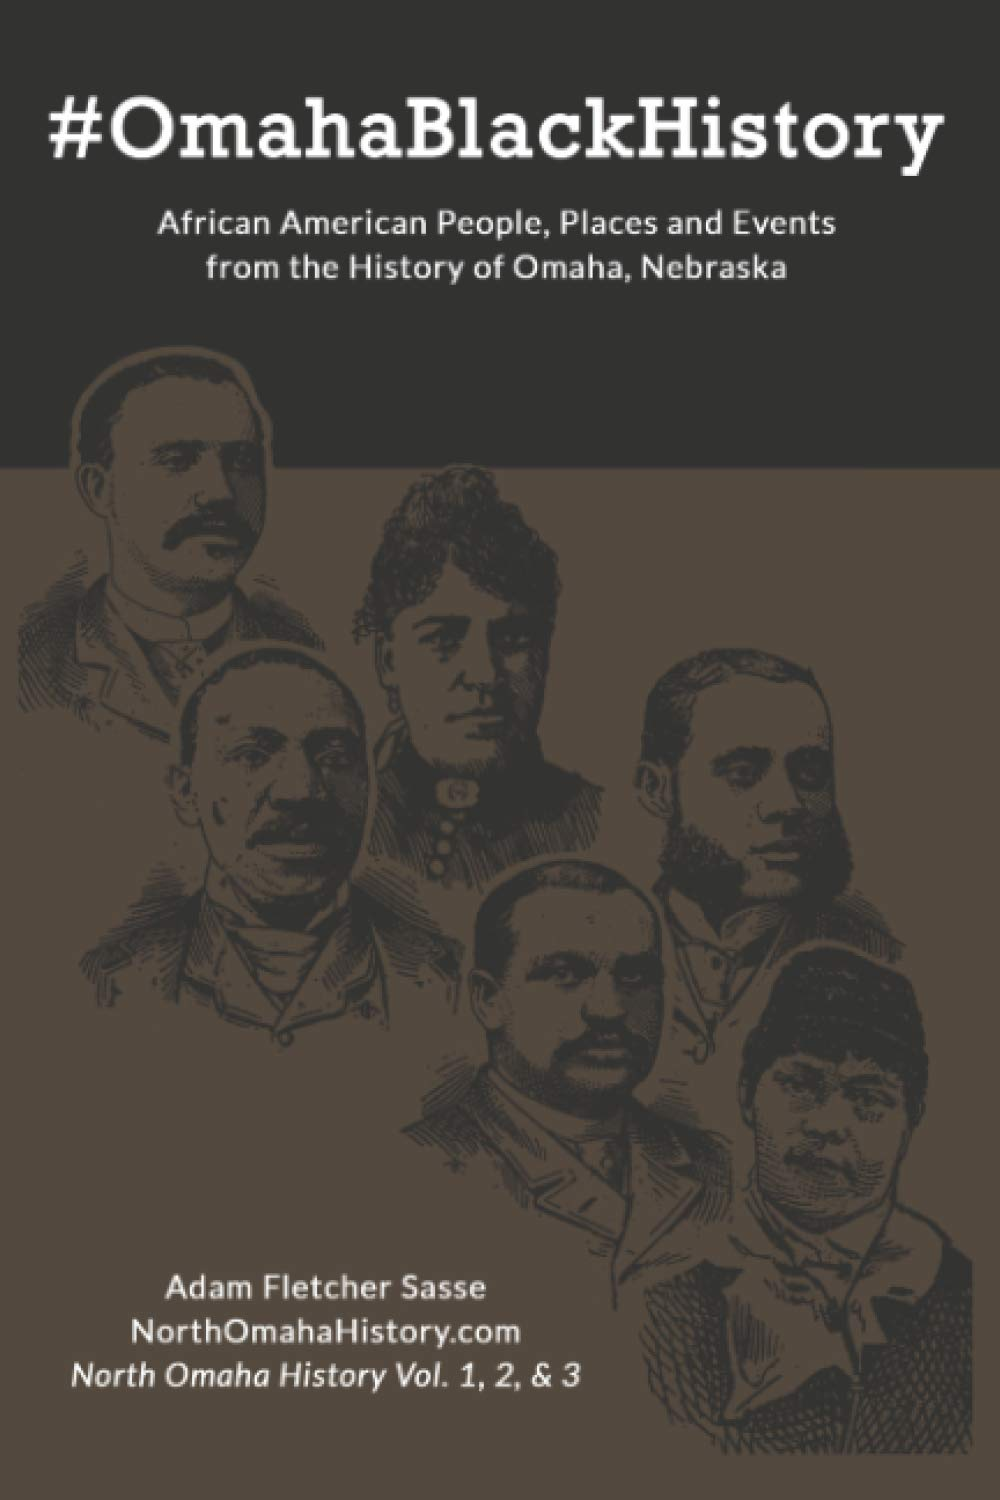 #OmahaBlackHistory: African American People, Places and Events from the History of Omaha, Nebraska